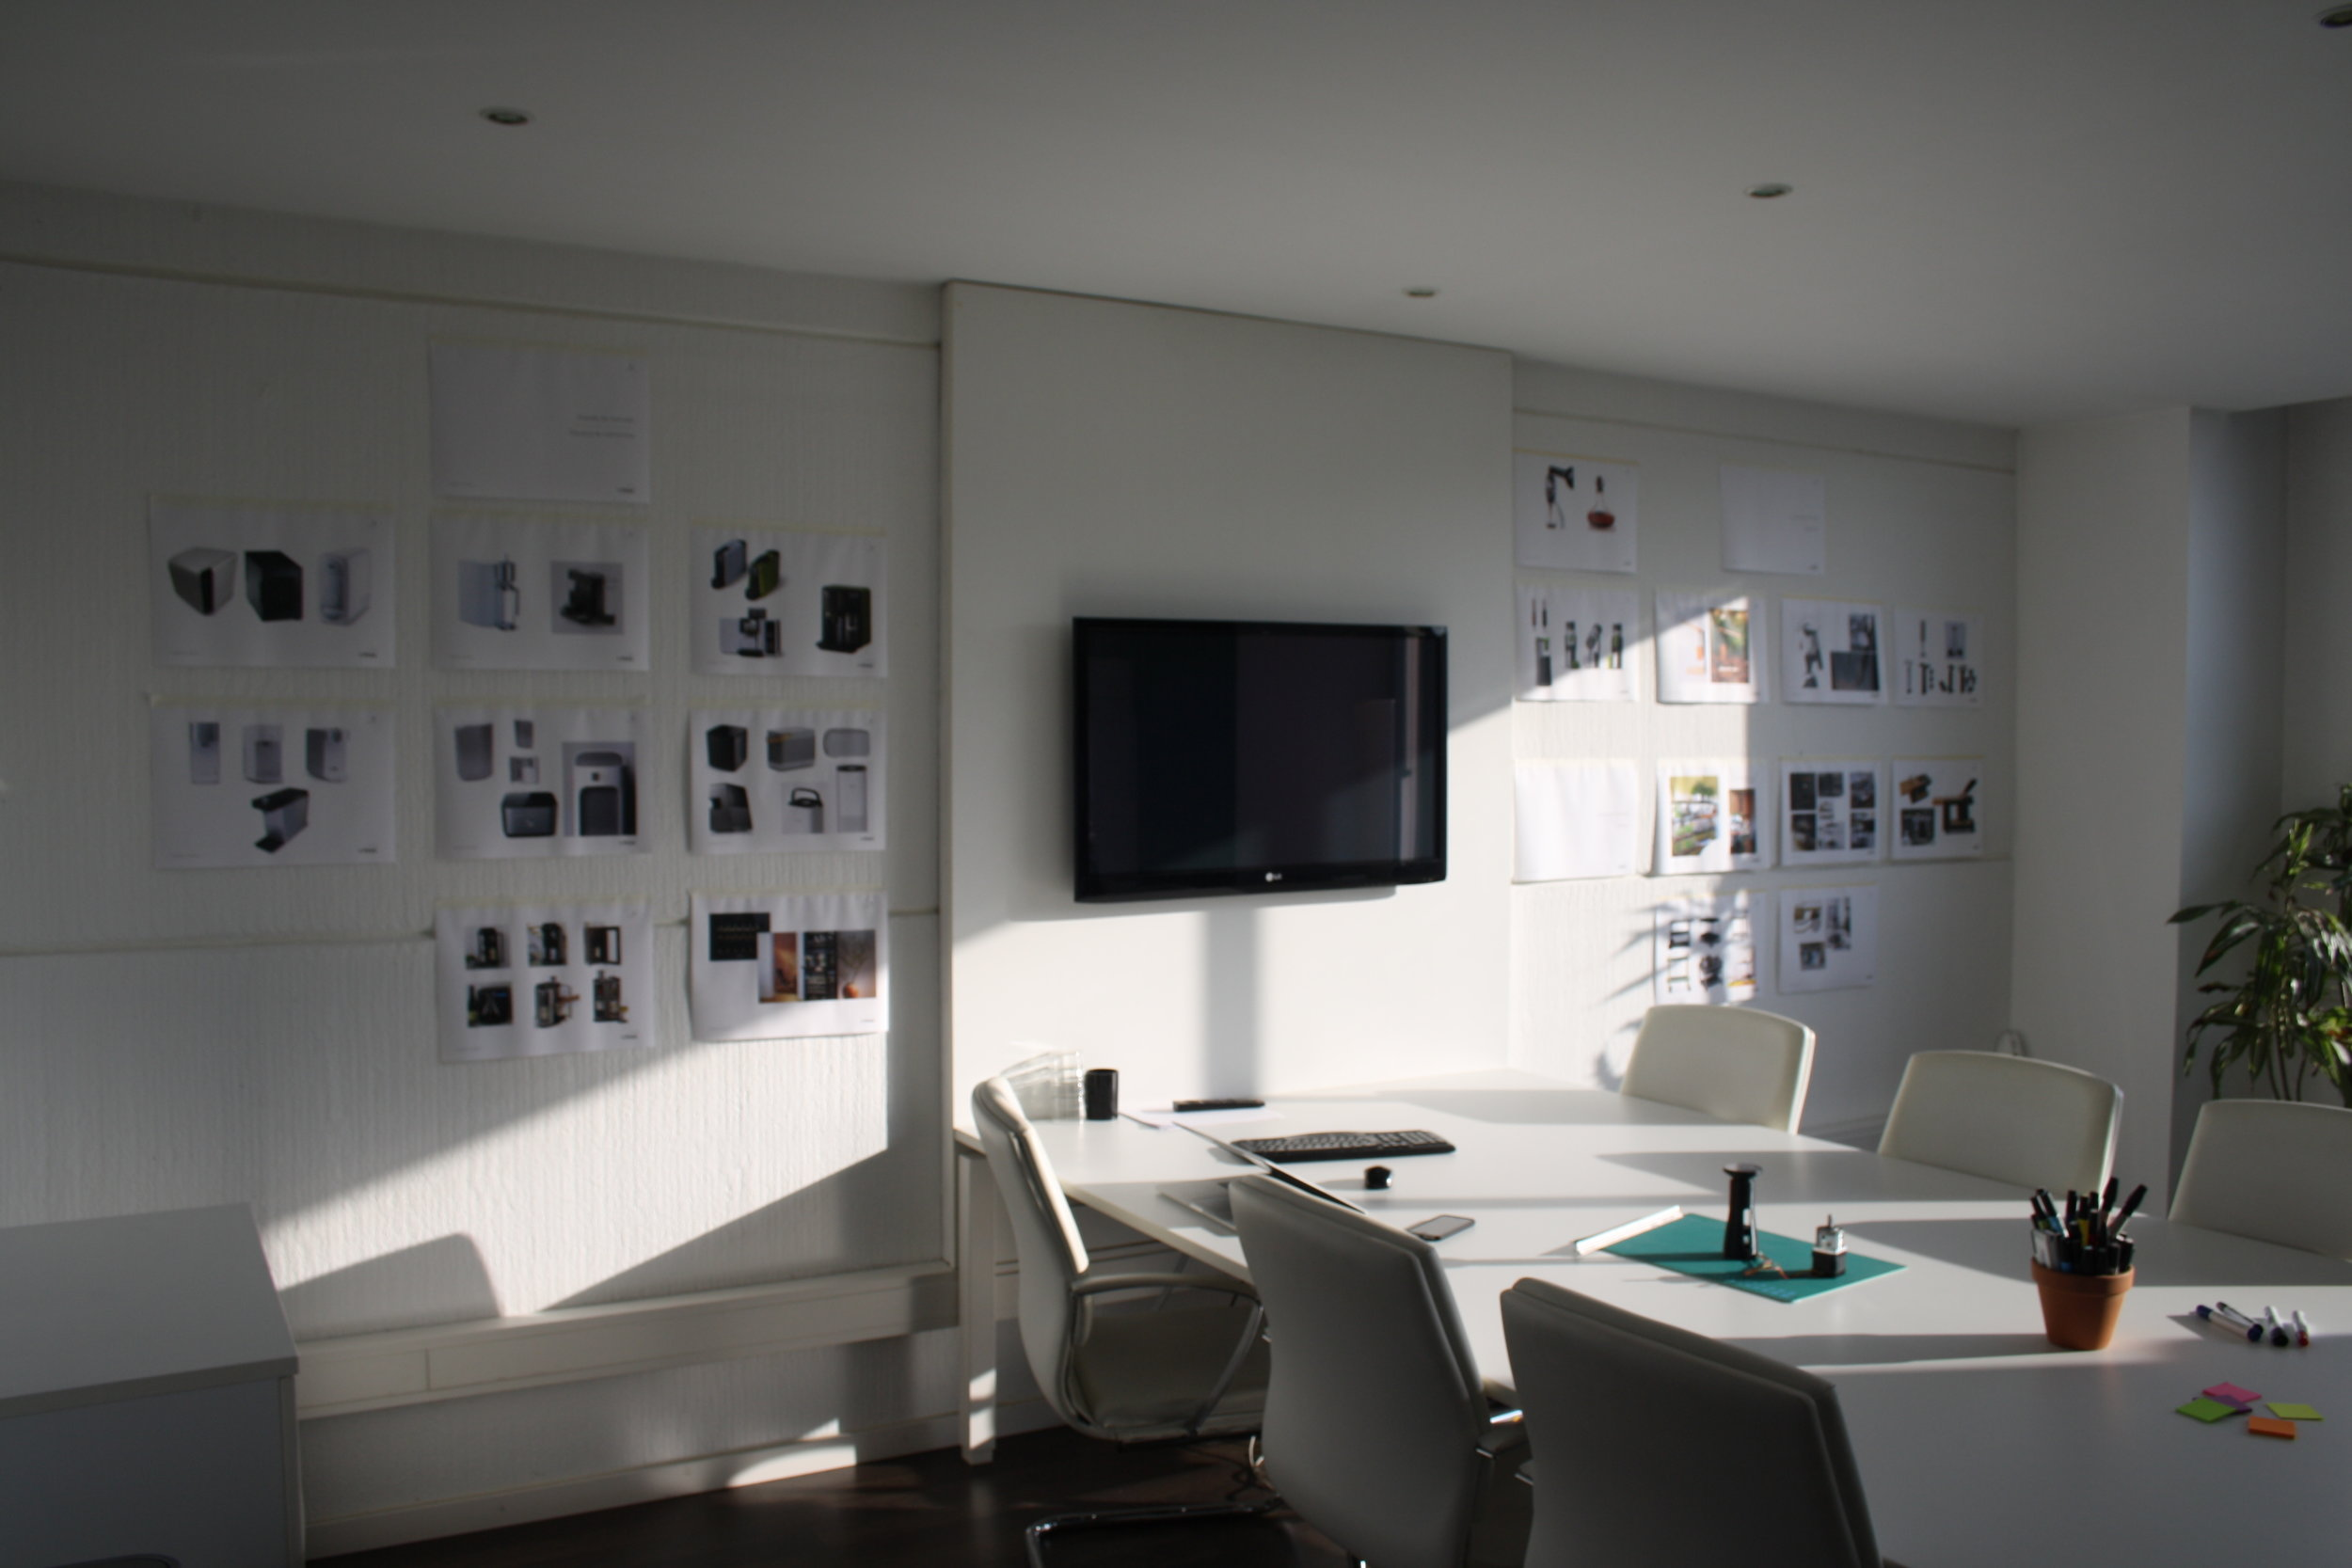 nosotros-meeting-room-projects-design.JPG